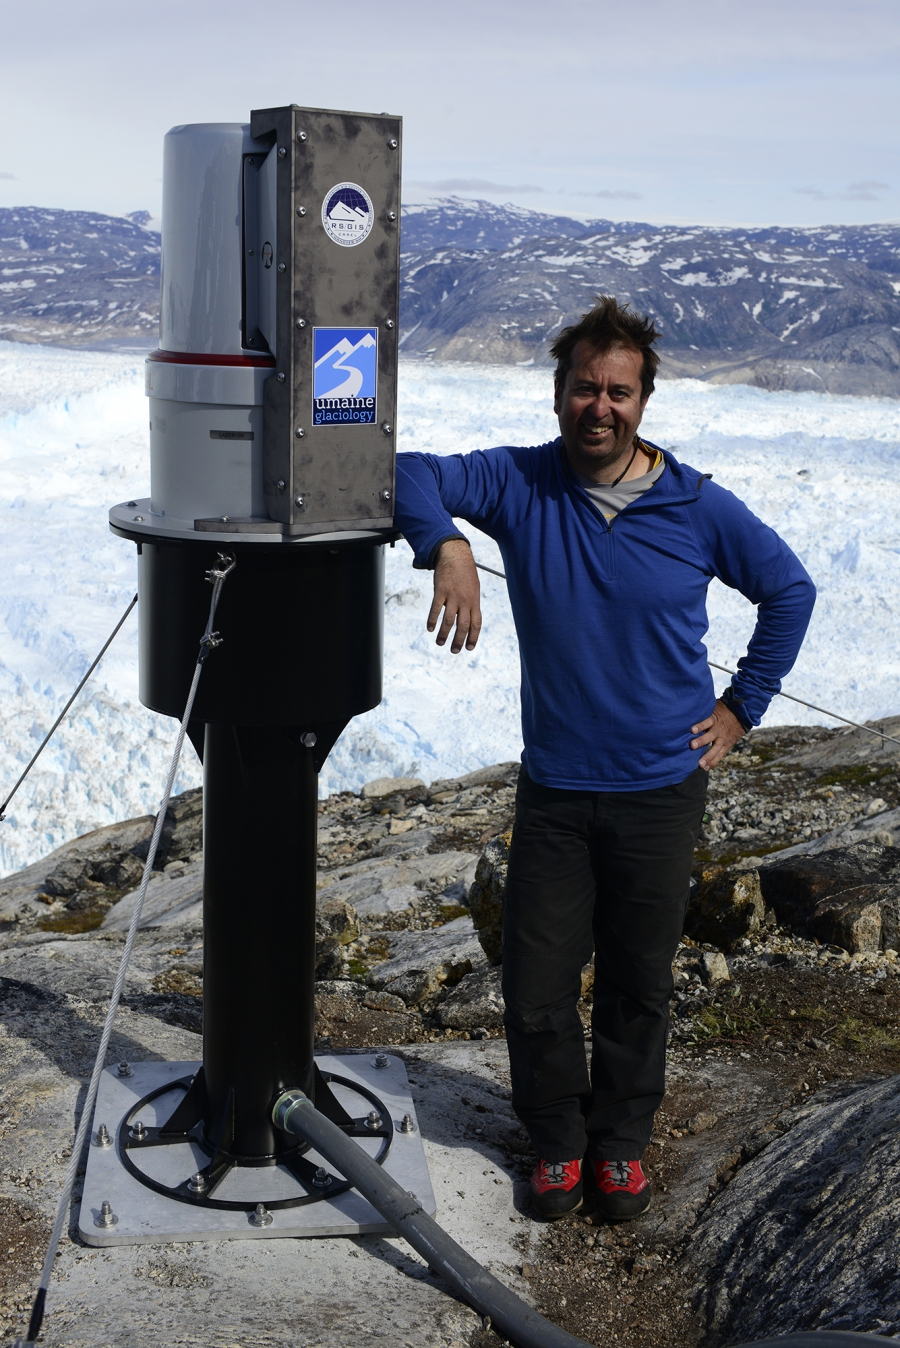 Glaciologist Gordon Hamilton from the University of Maine standing next to a new state-of-the-art laser his team has just installed on the rim of Greenland's Helheim glacier. The laser will scan the glacier in unprecedented detail and provide valuable clu